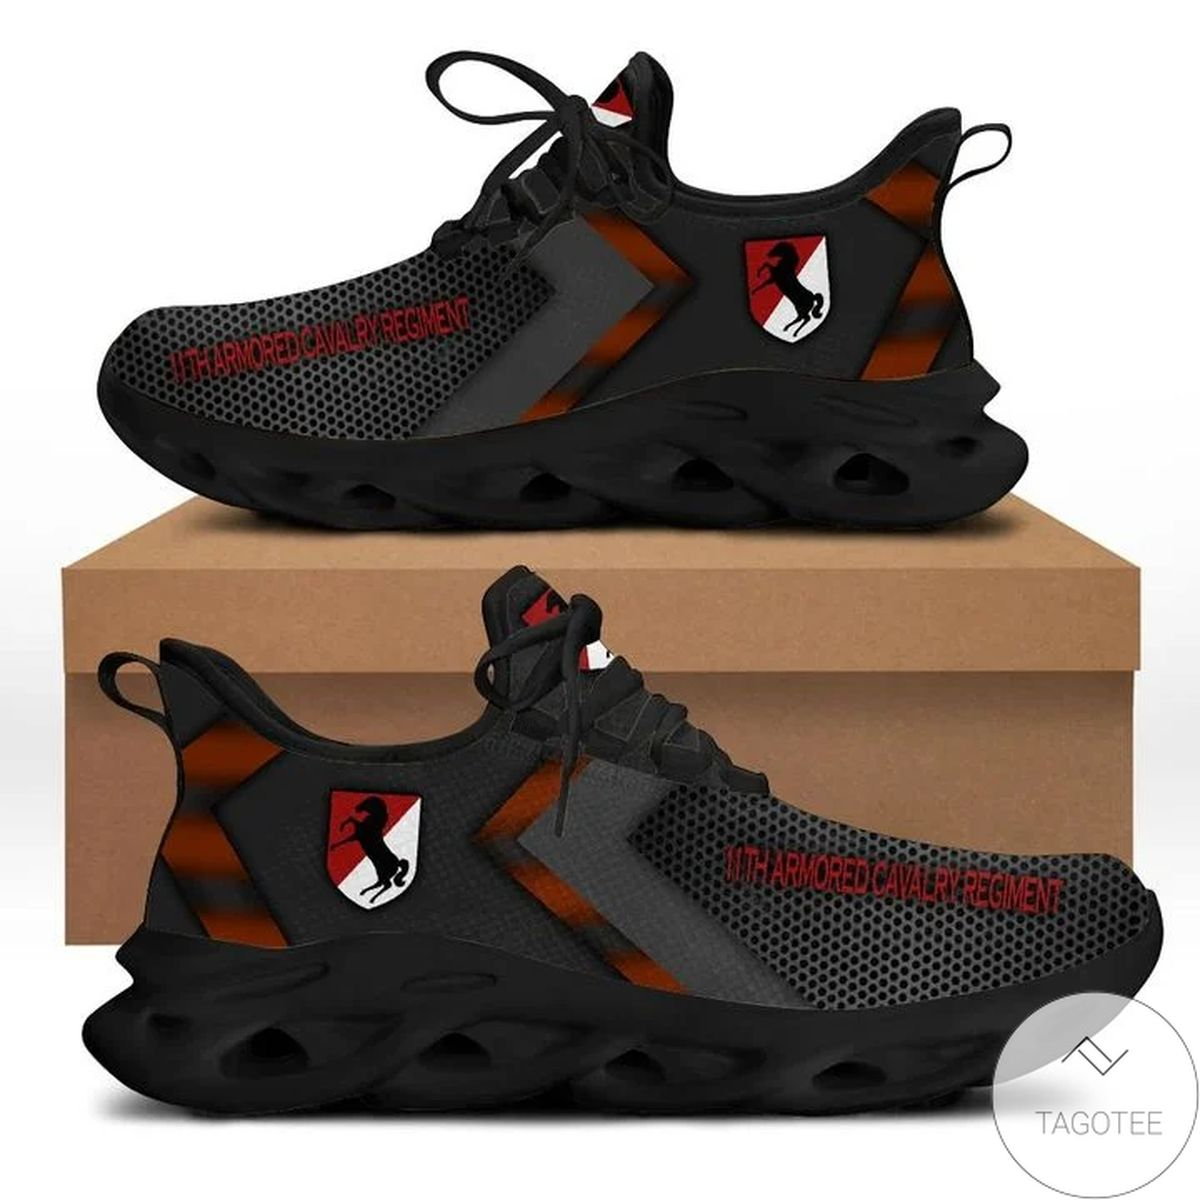 11th Armored Cavalry Regiment Max Soul Shoes